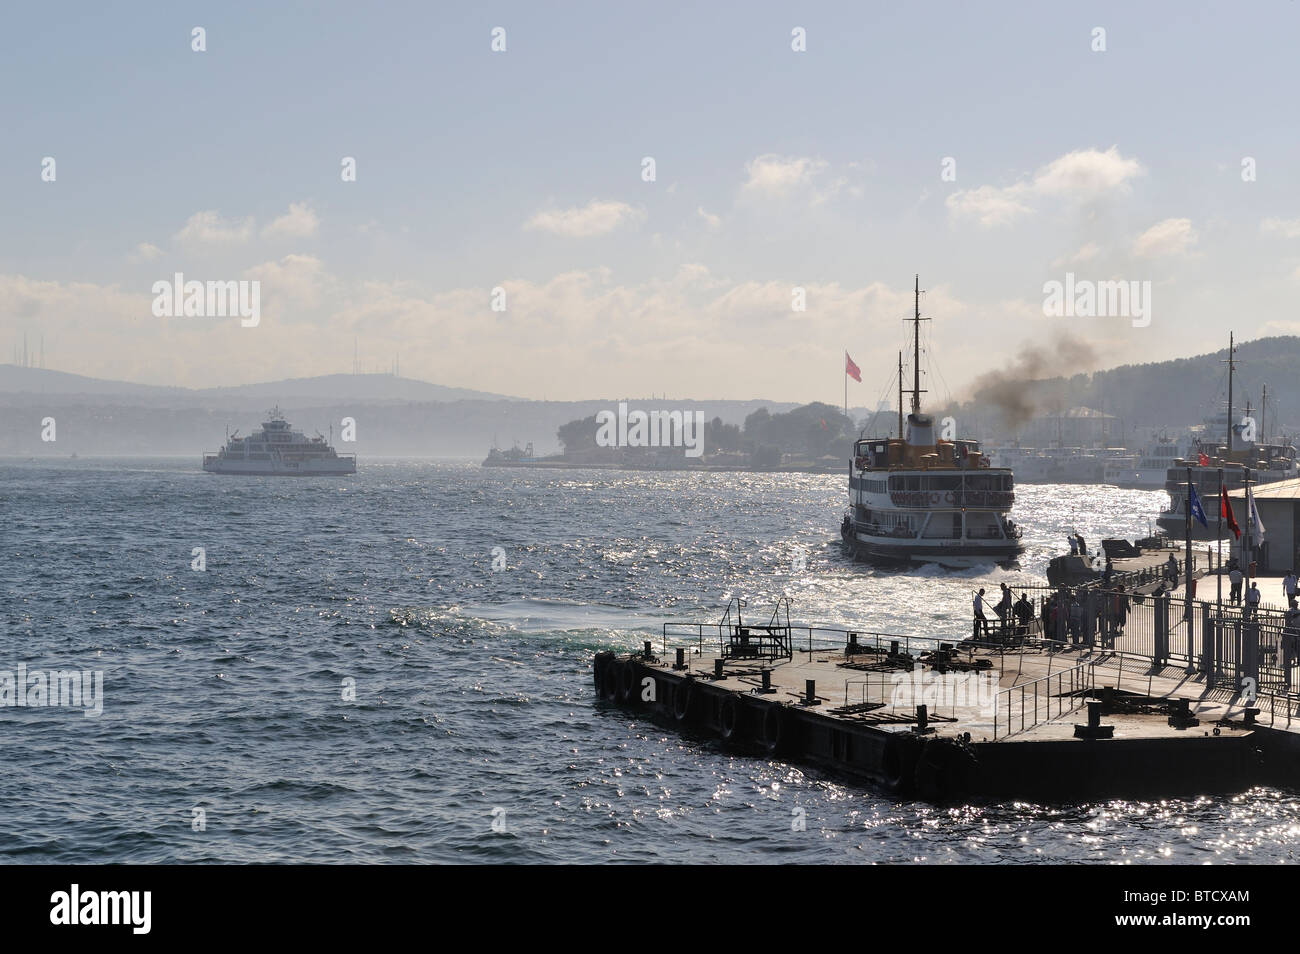 Ferries, the Golden Horn and the Bosphorus, İstanbul, Turkey 100916_35945 - Stock Image